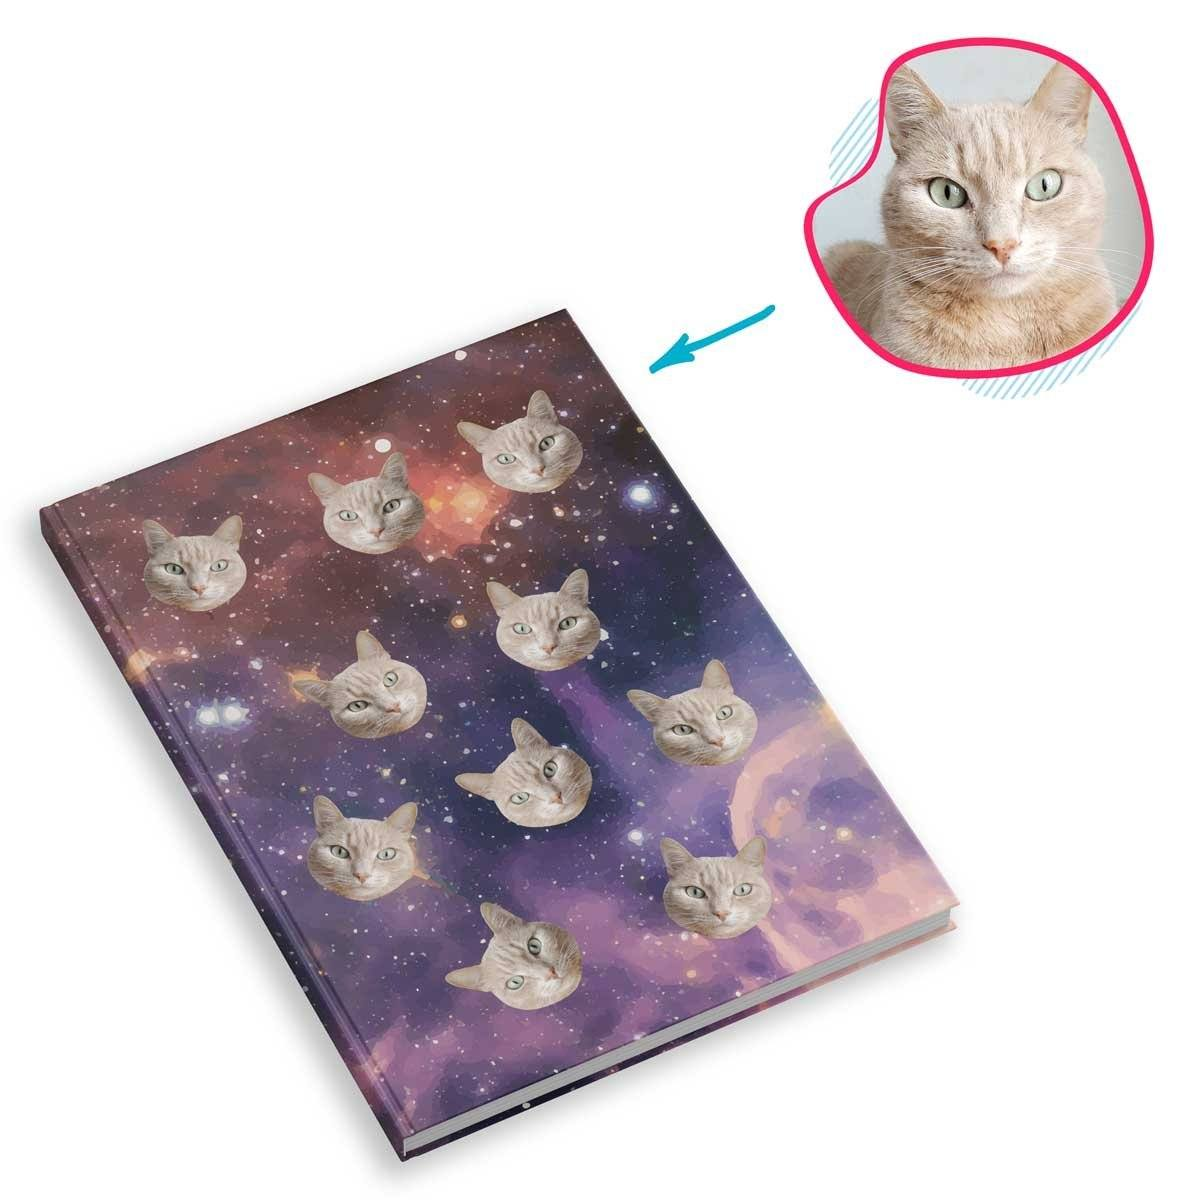 galaxy Galaxy Notebook personalized with photo of face printed on them